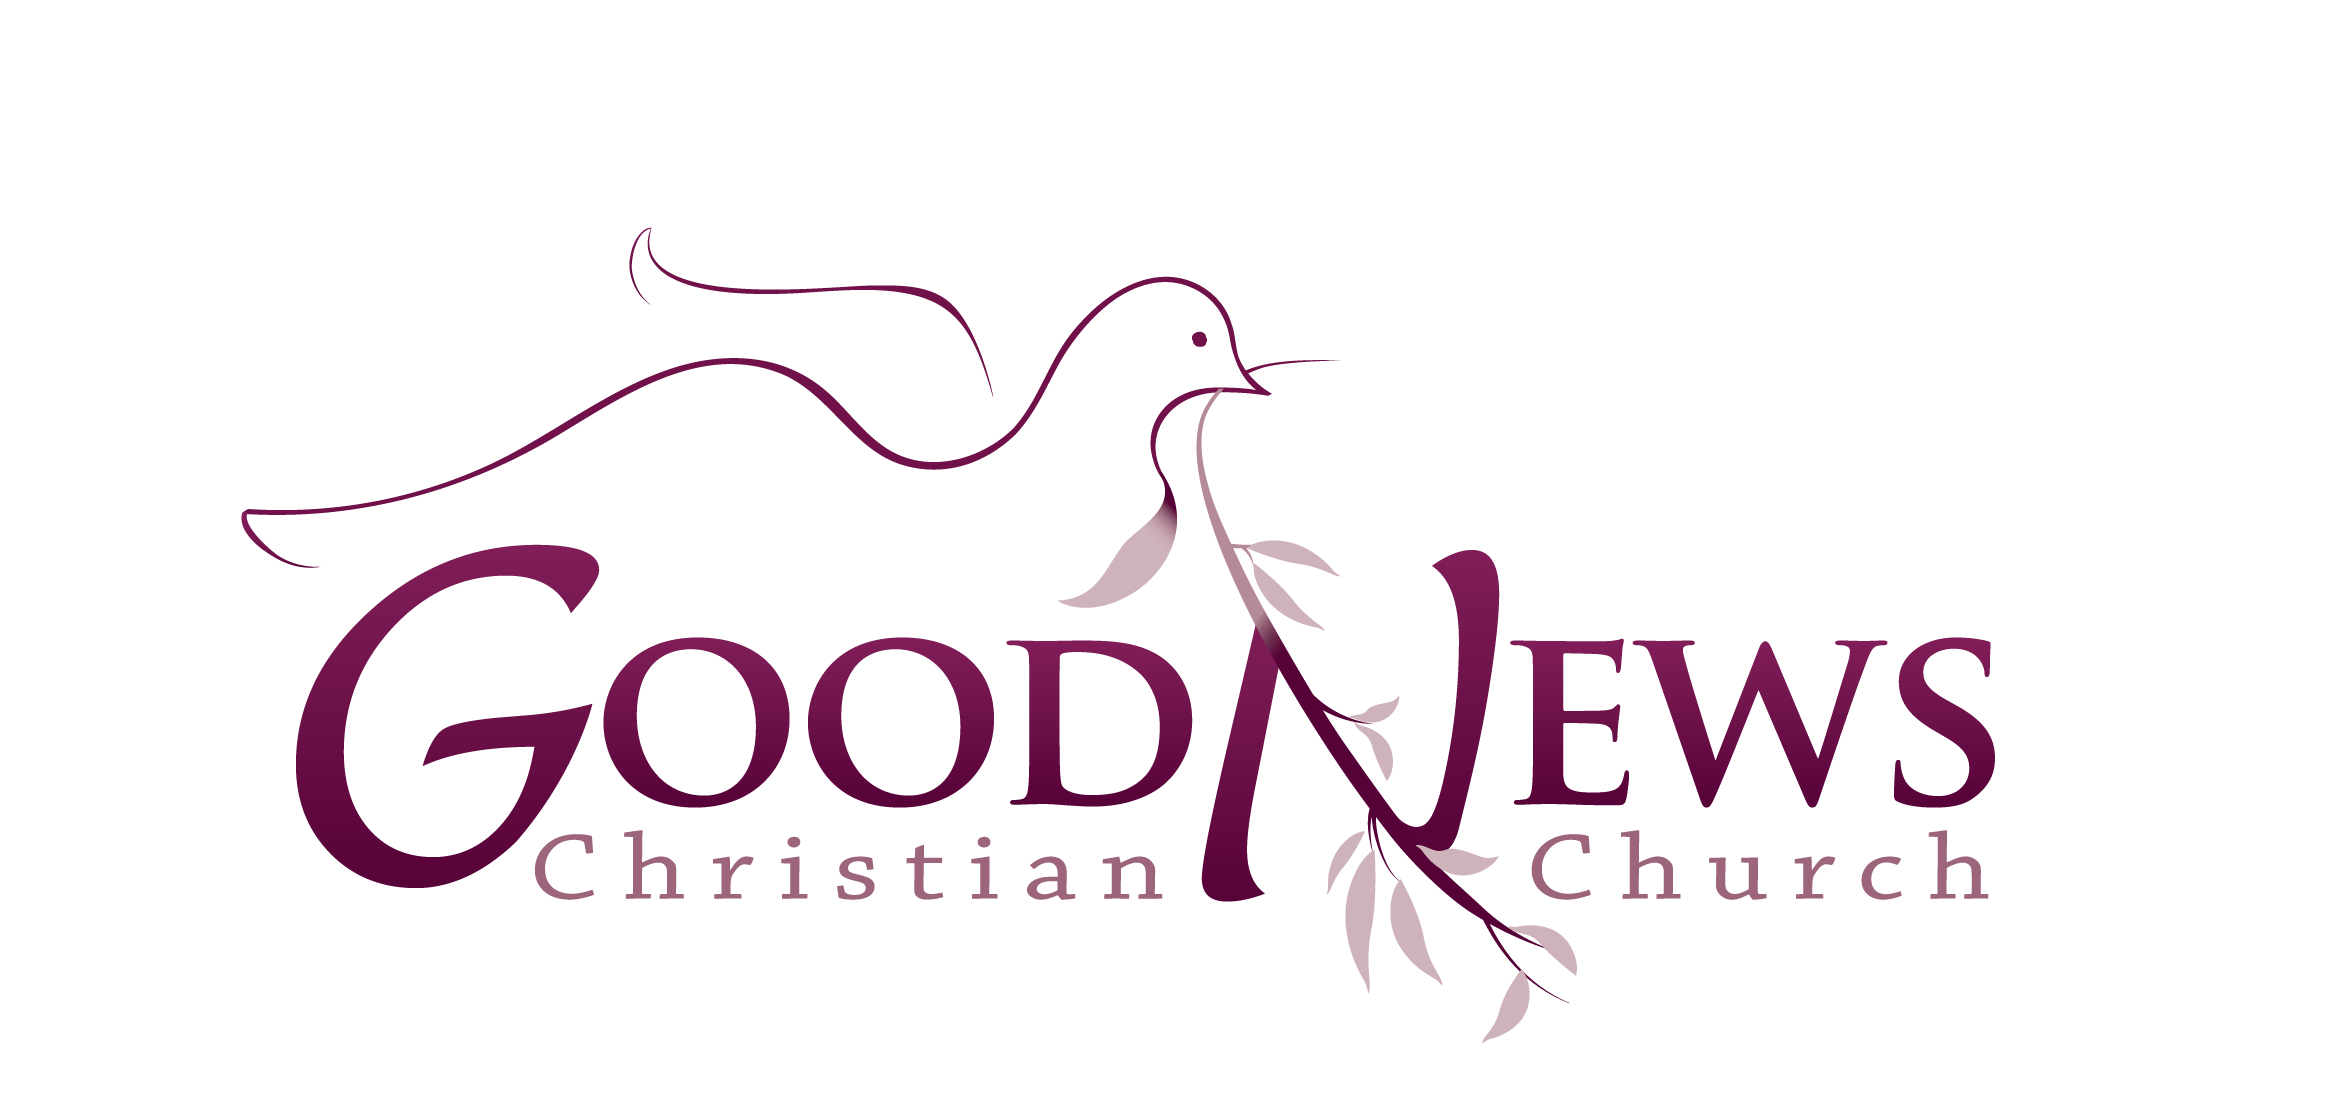 Good News Christian Church